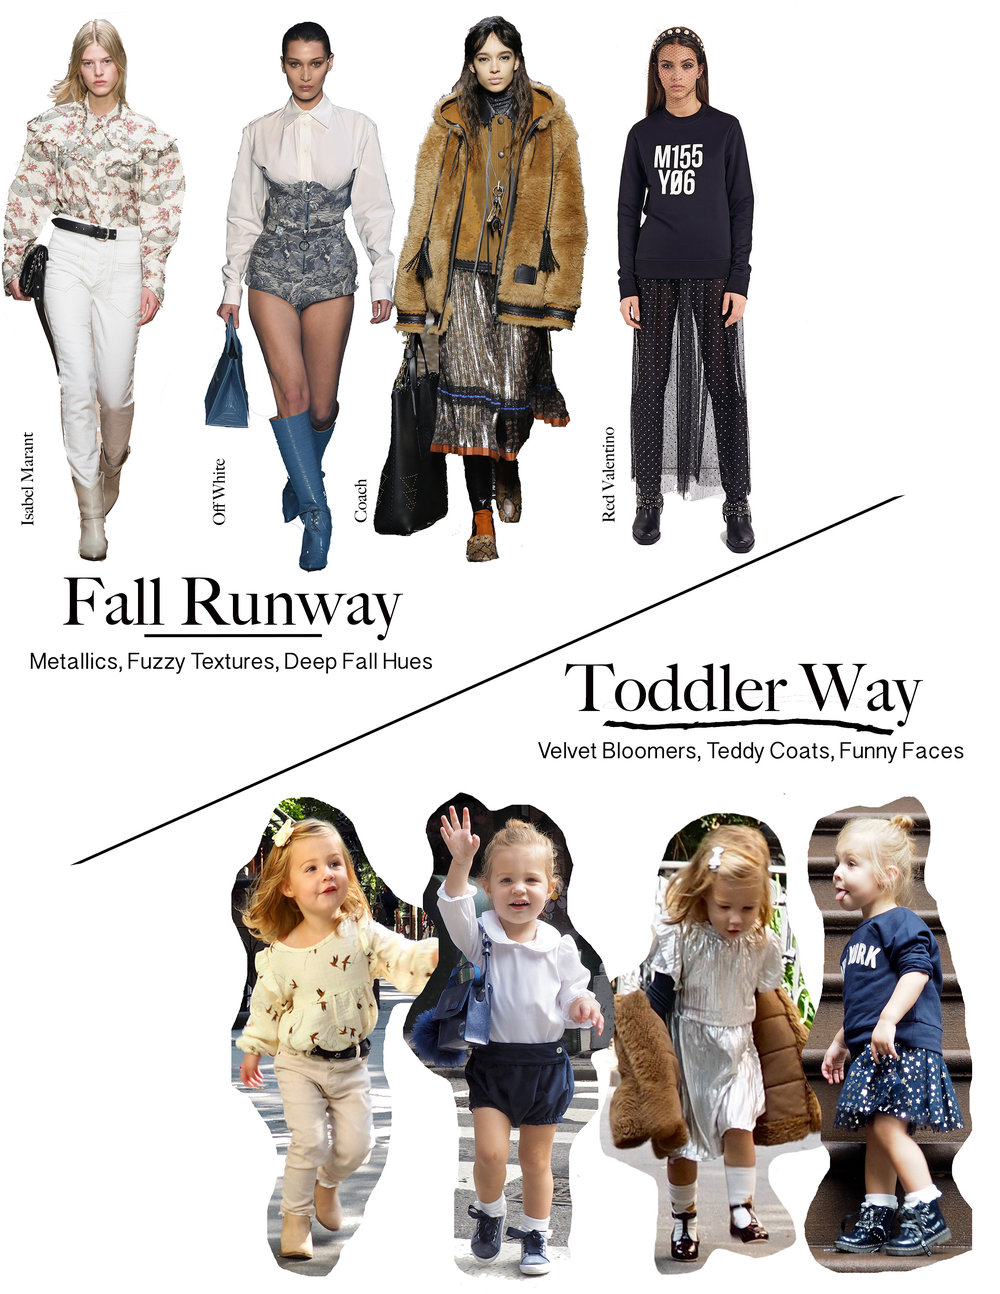 The Runway Isn't Just for Grown Ups - Some favorite looks translated for preschoolers and how to get the look below!